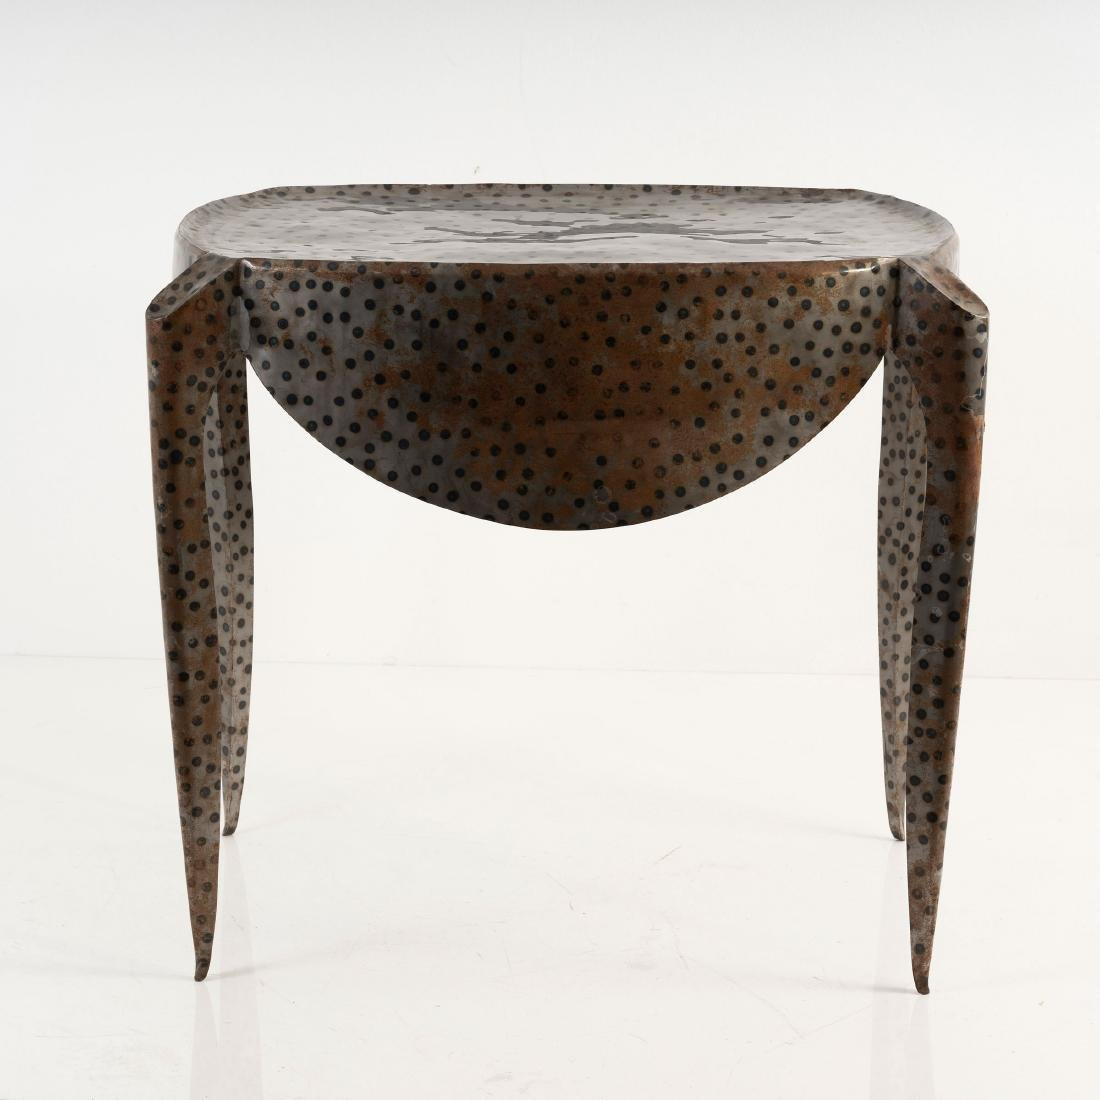 'Paris table', 1988 - 5